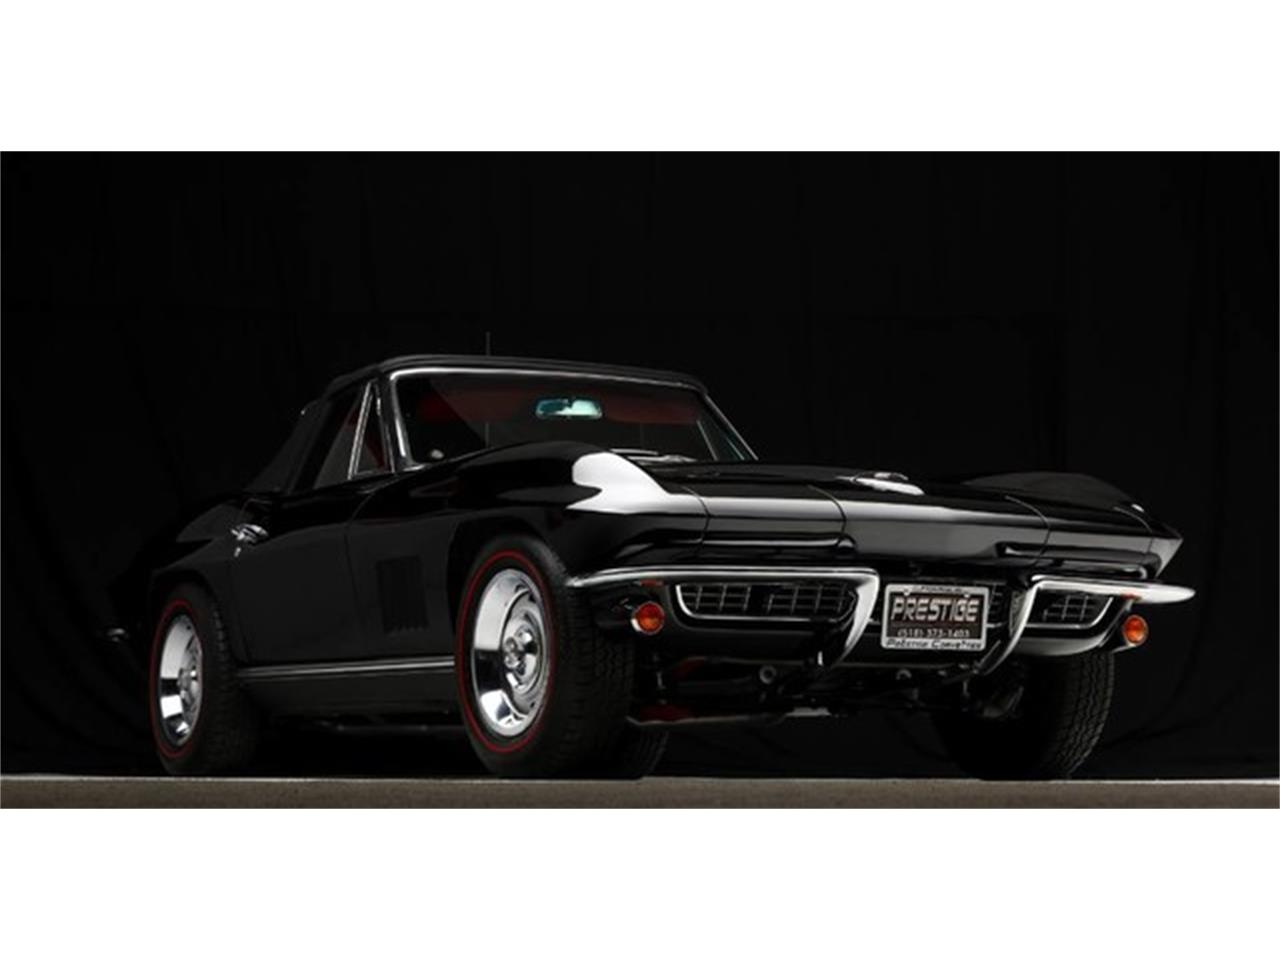 Large Picture of 1967 Chevrolet Corvette located in Clifton Park New York Auction Vehicle - PU42